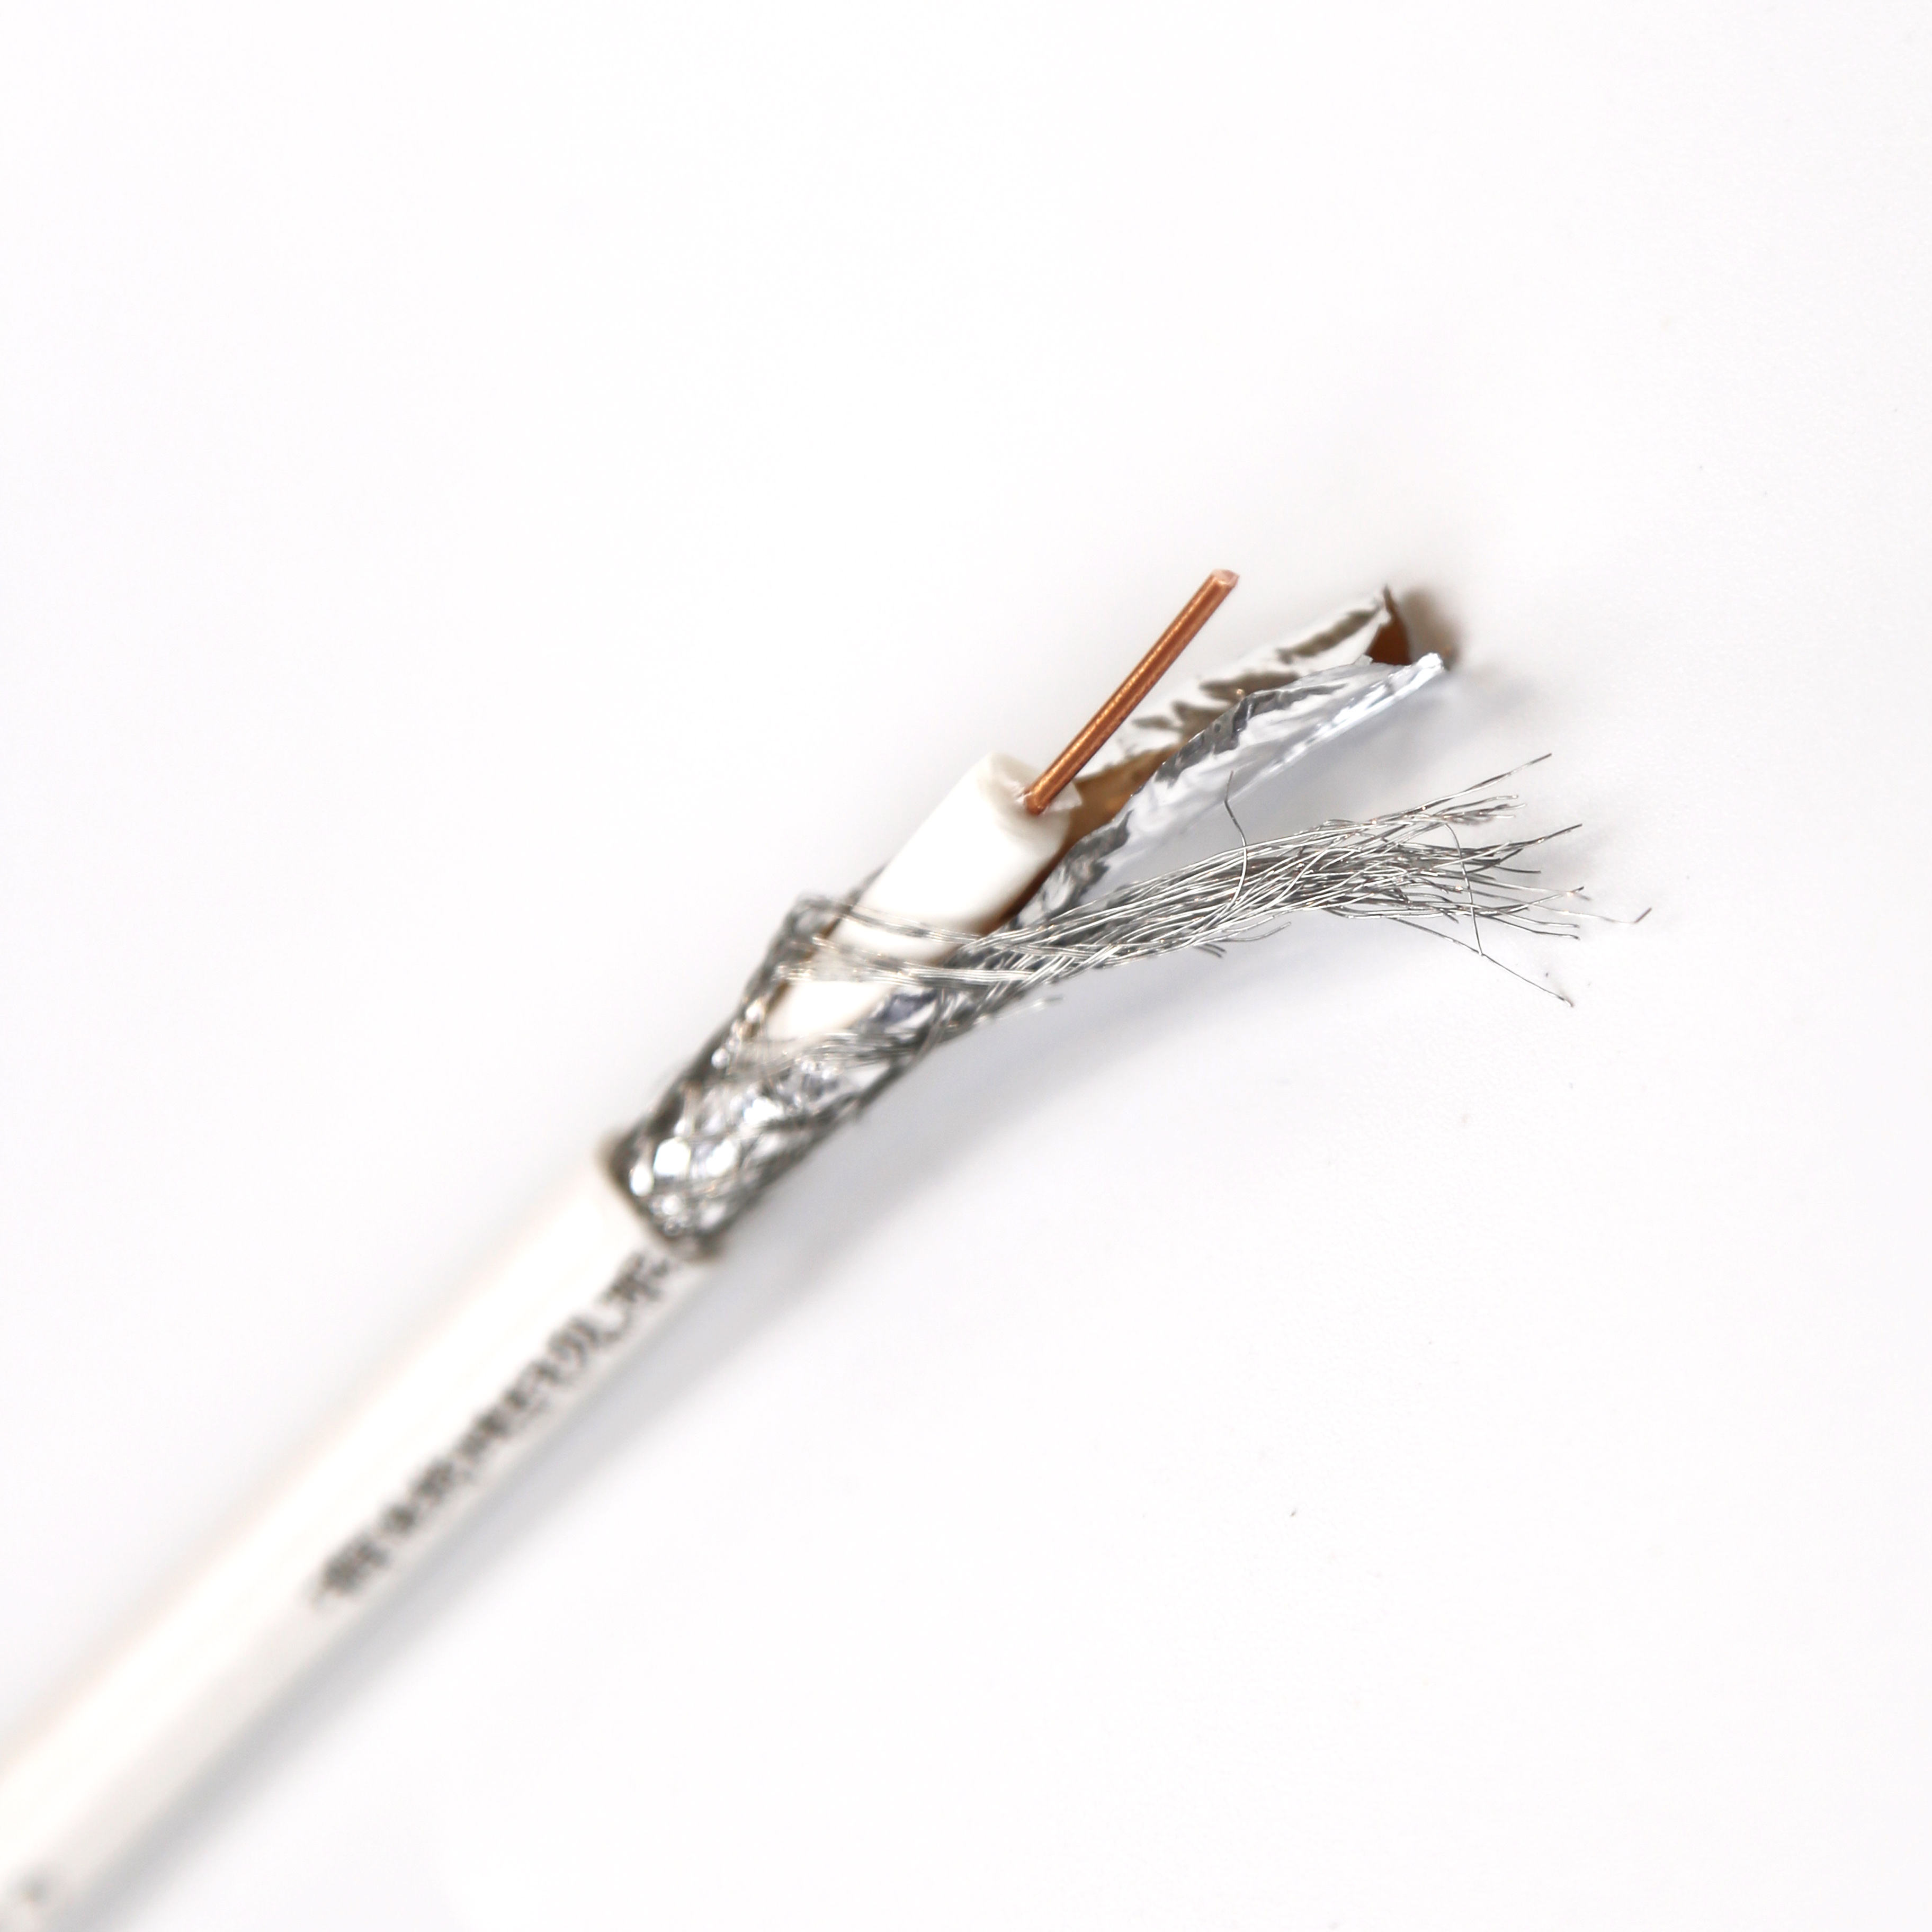 coaxial cable_015.jpg